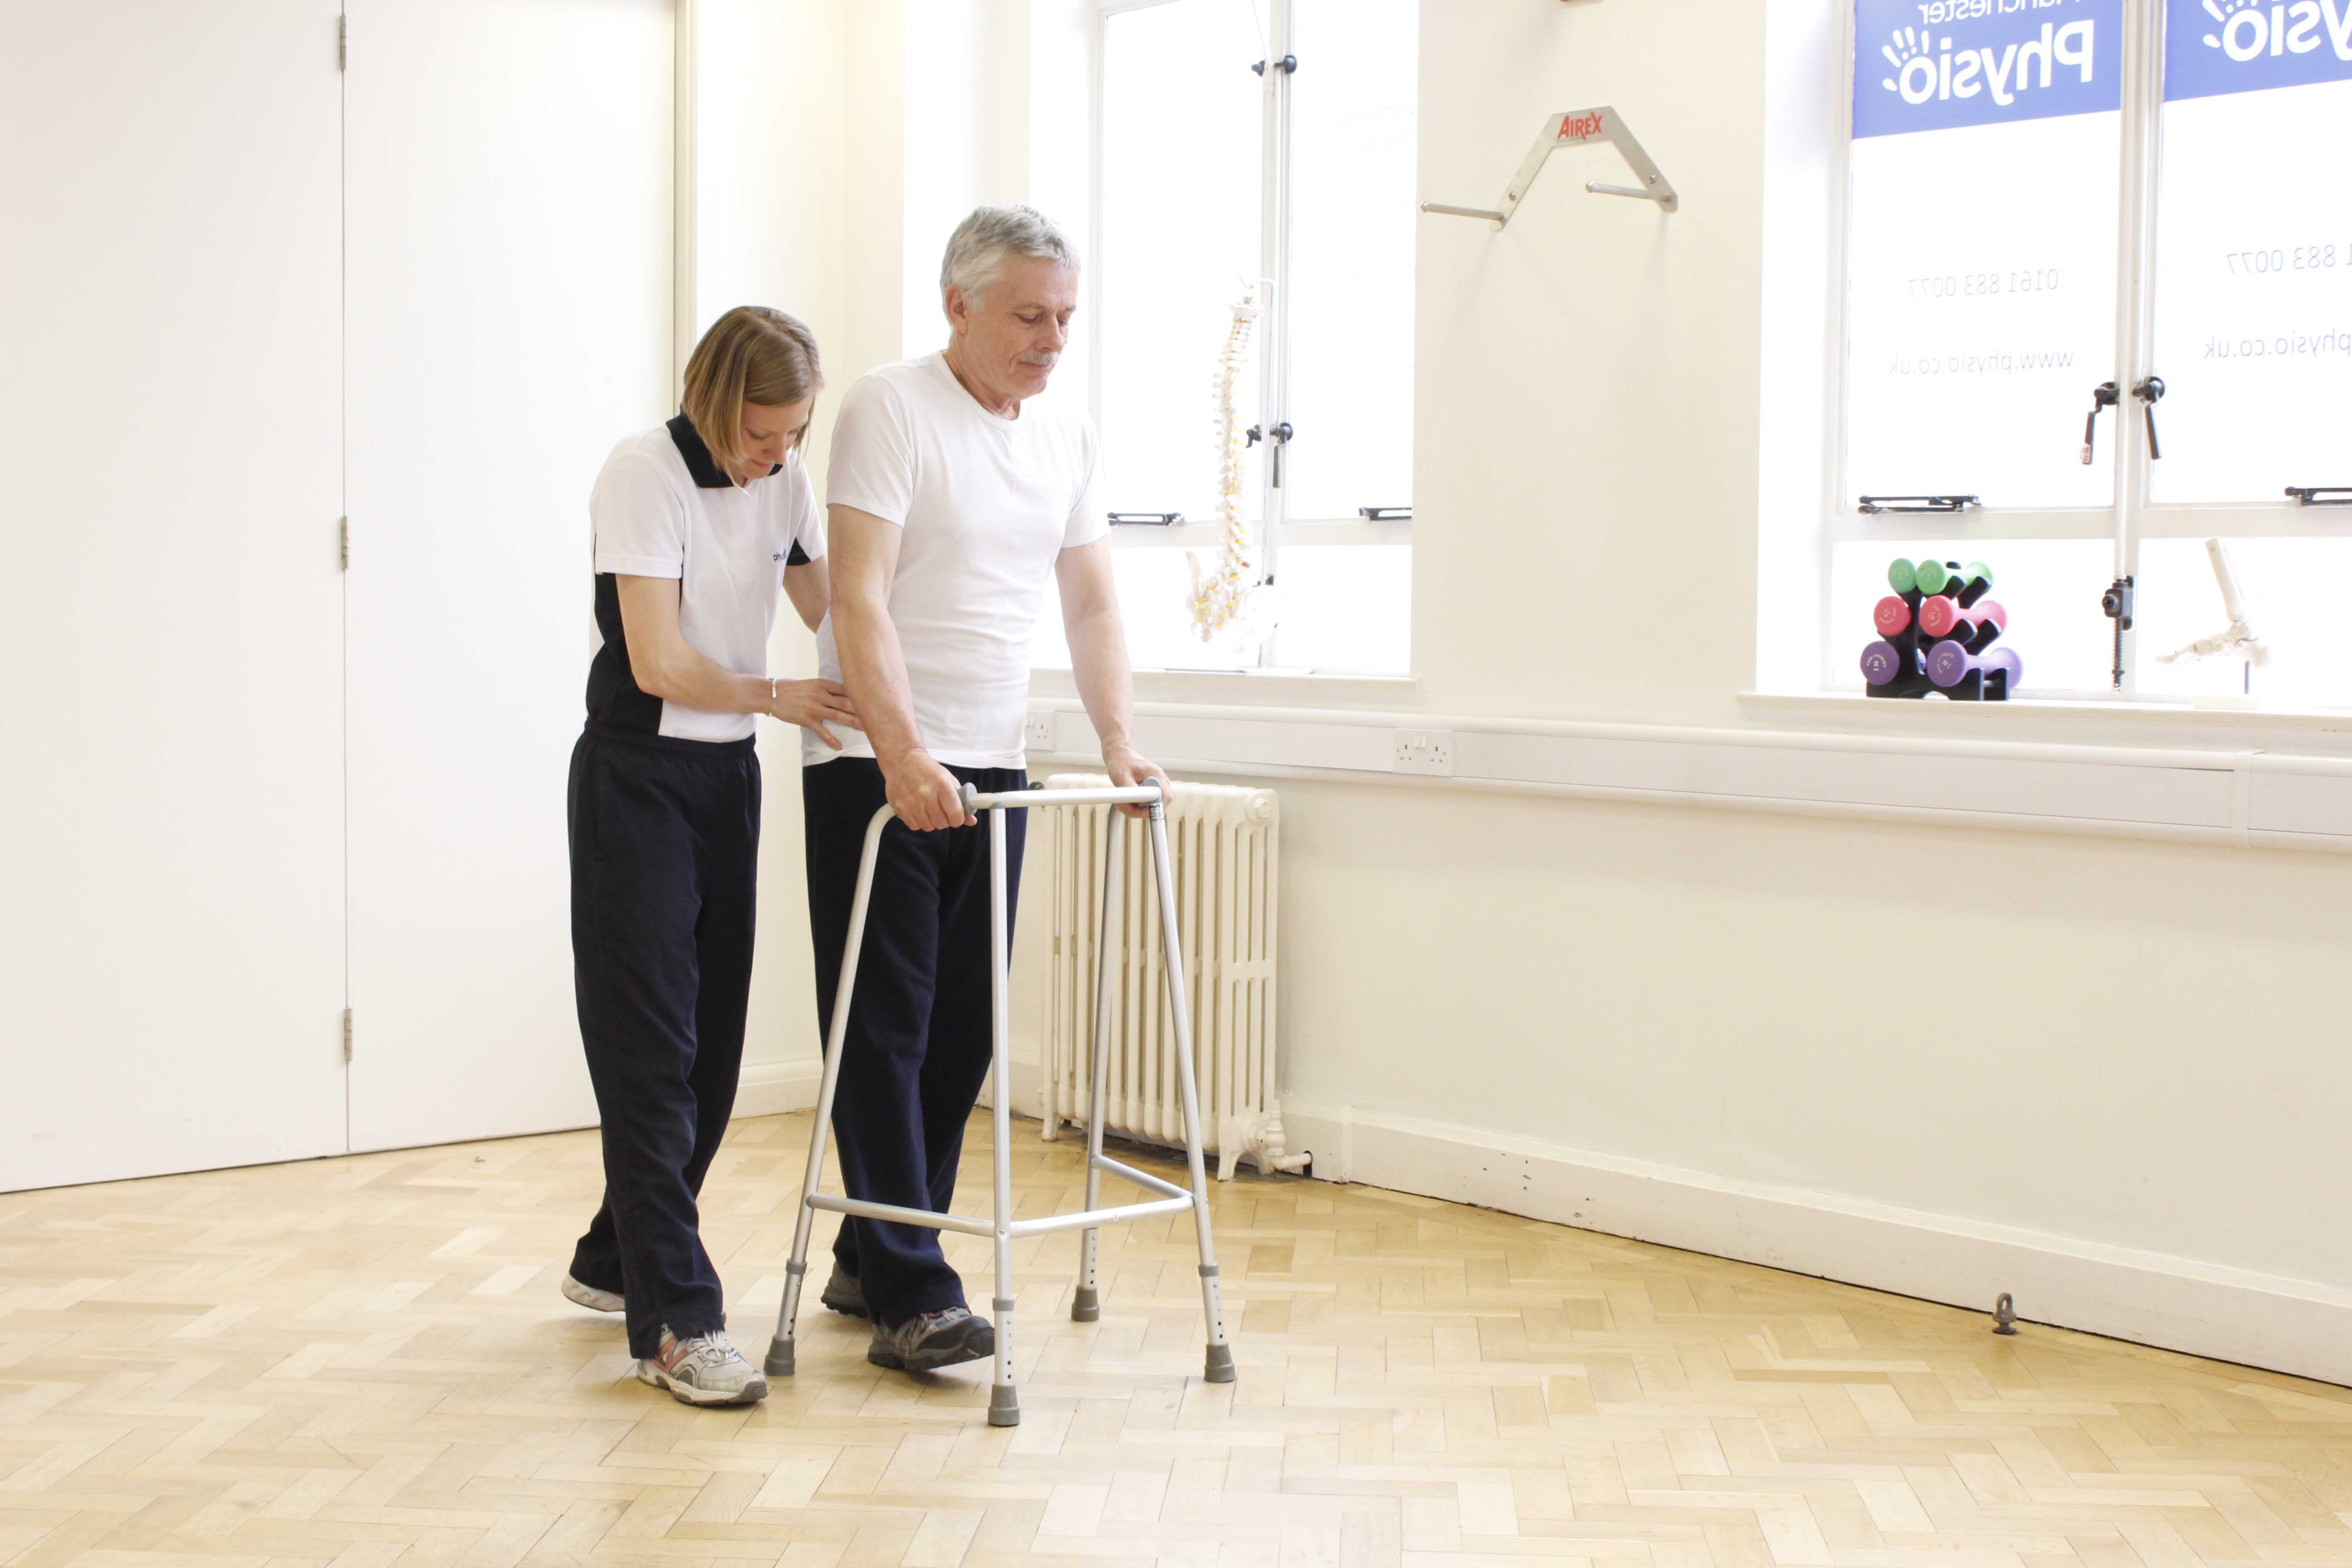 Mobility exercises using a walking frame under the close supervision of an experienced physiotherapist